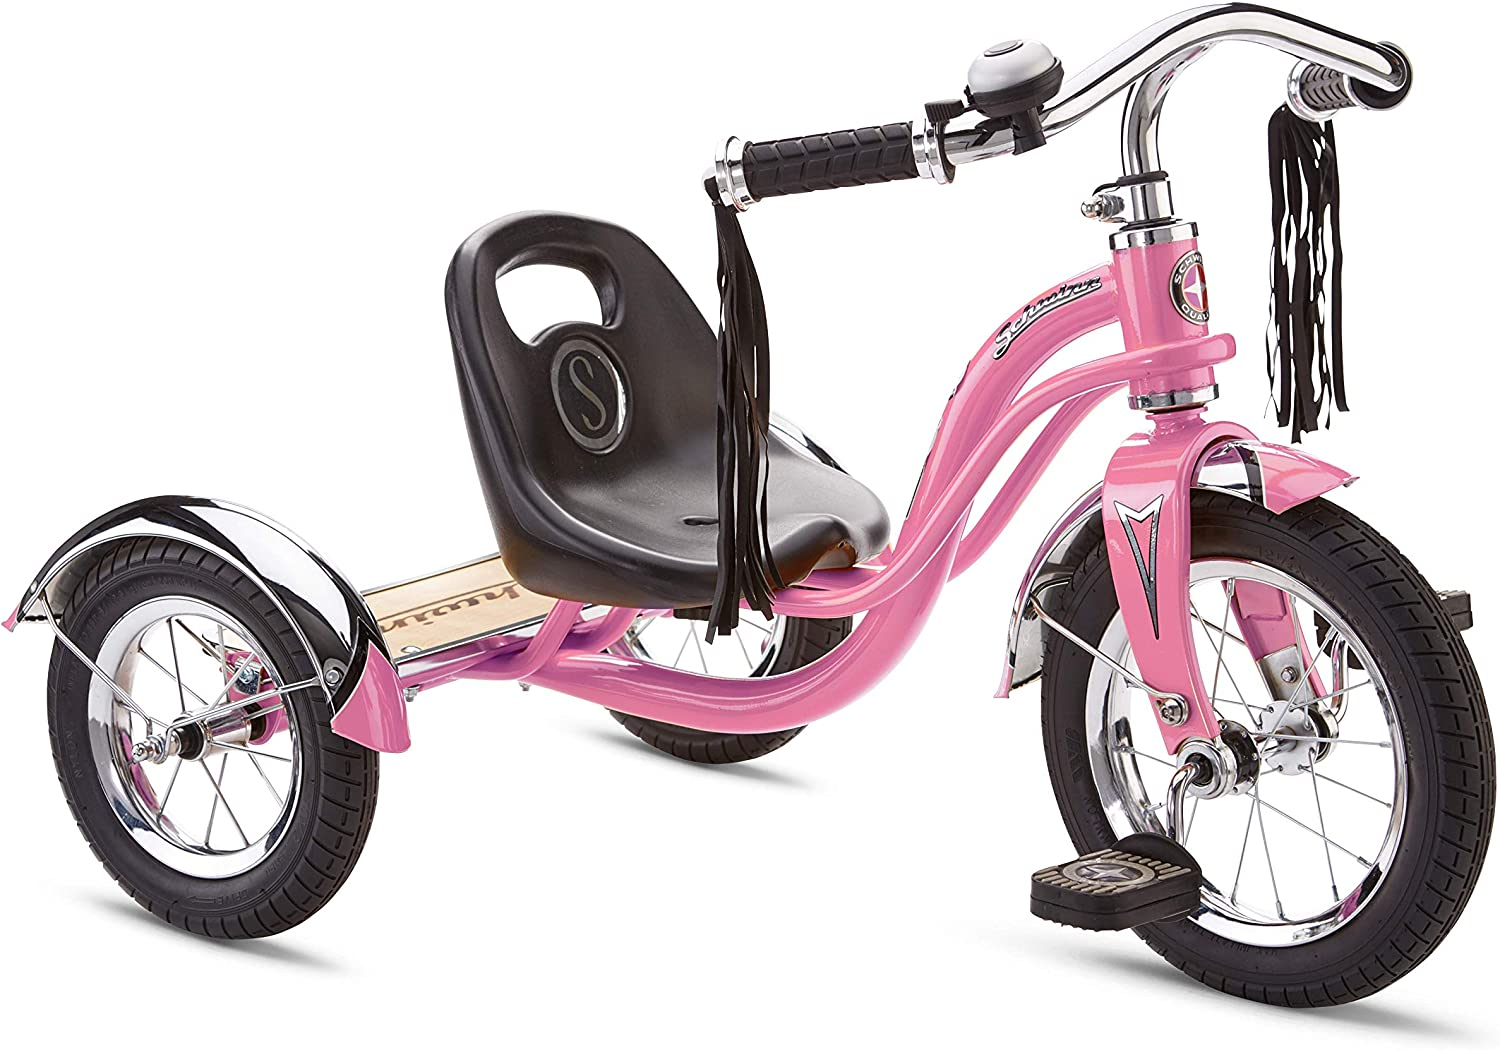 Best Tricycle for Toddlers: Schwinn Roadster Classic Trike